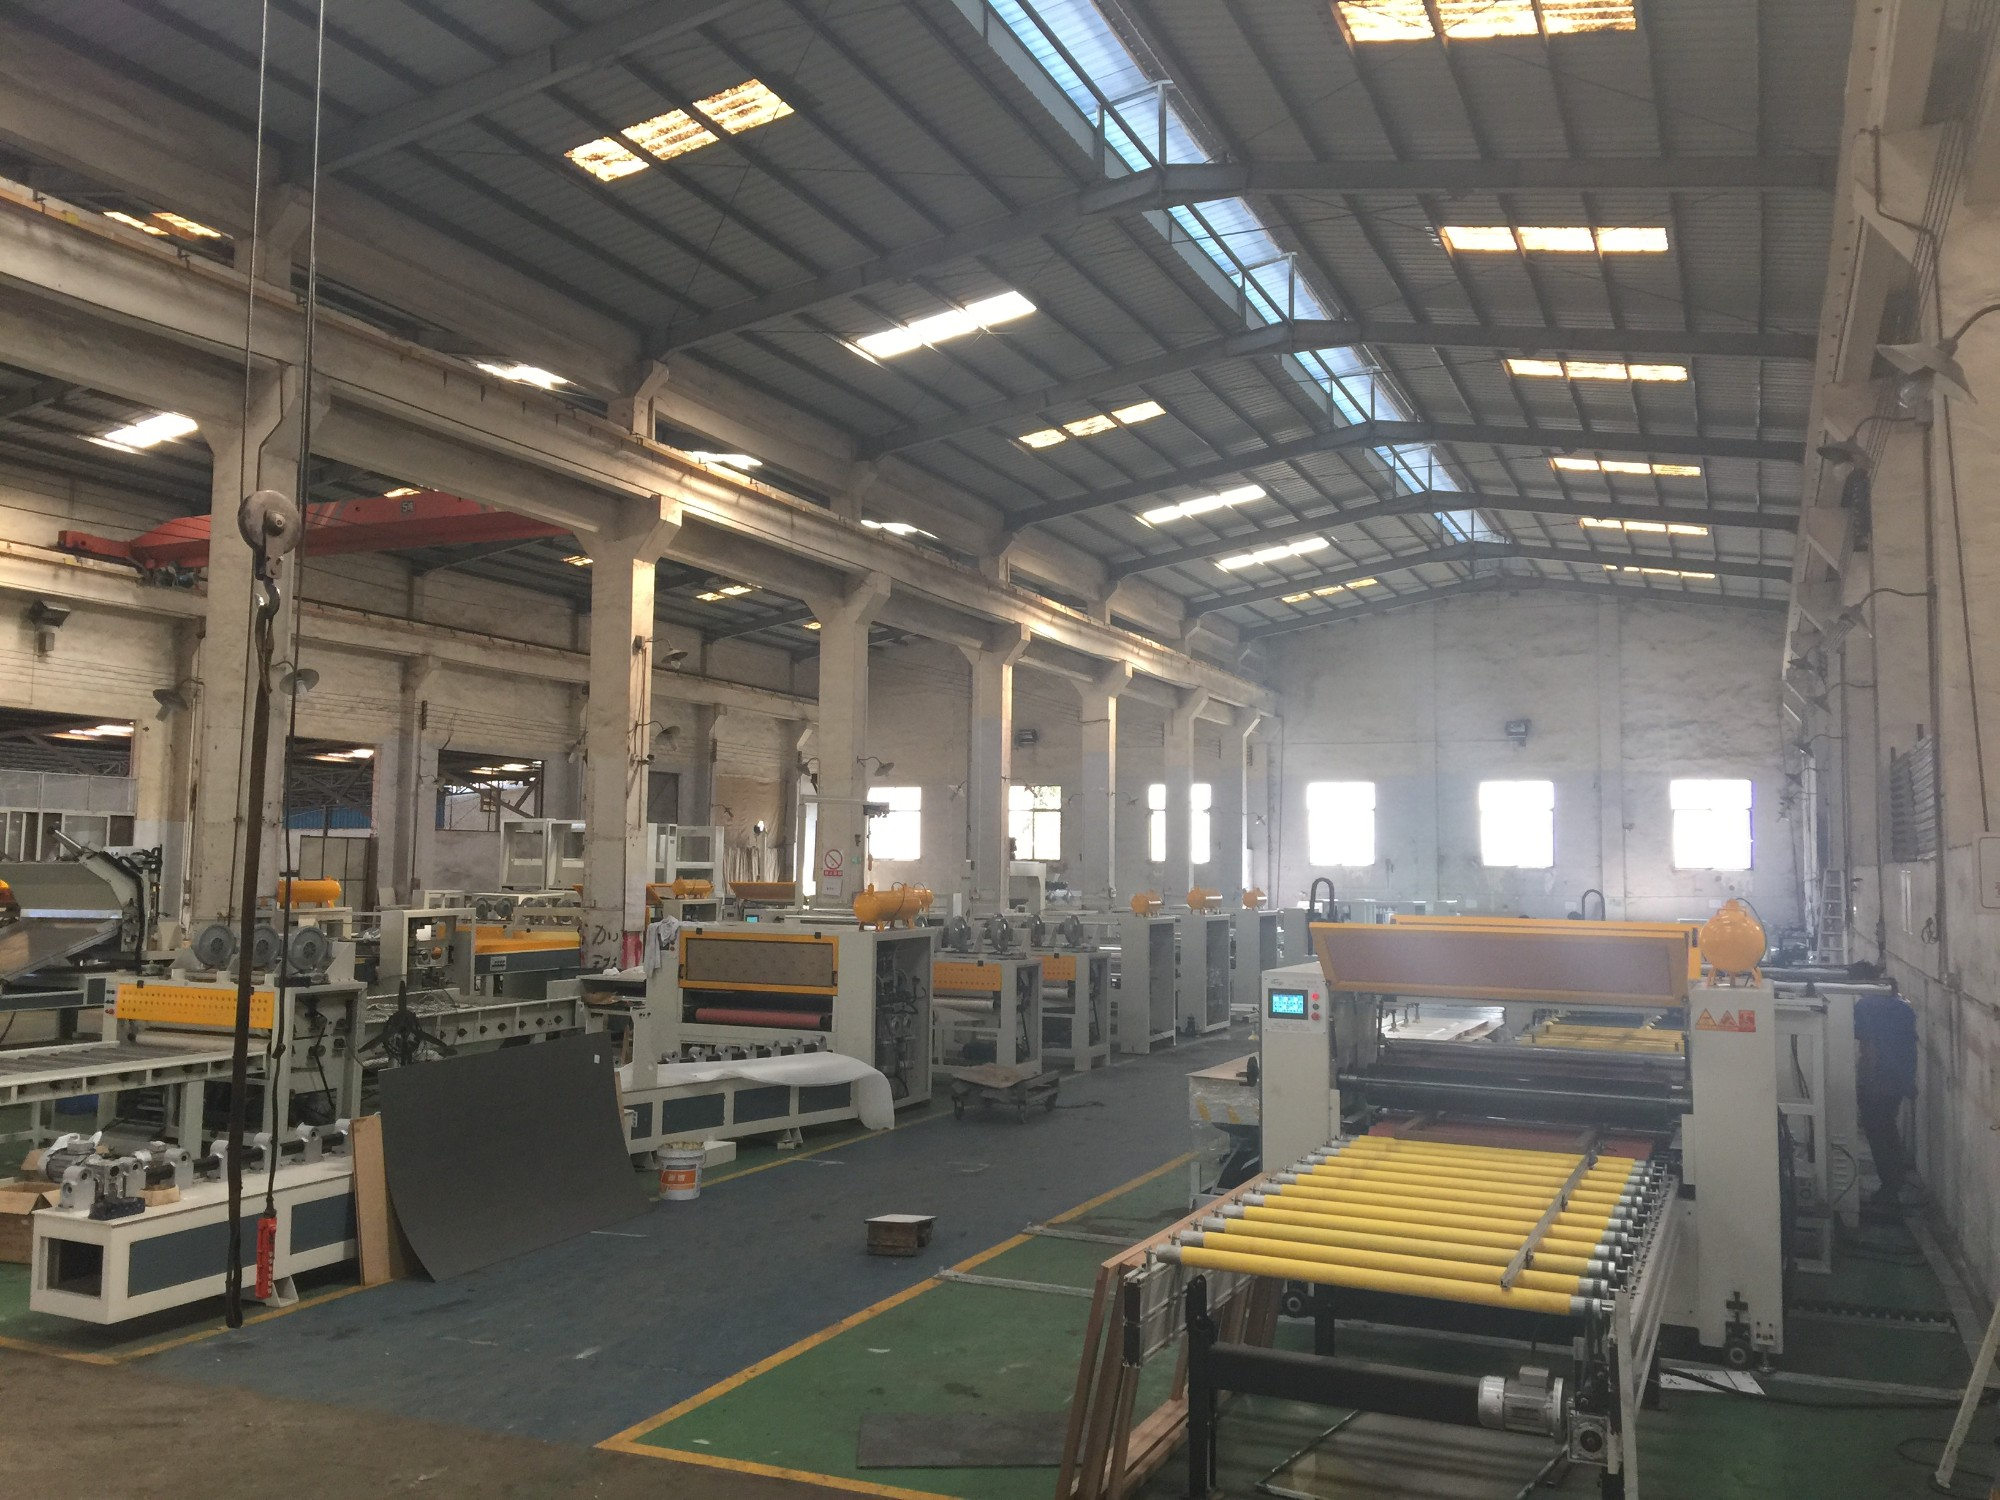 Machine For Wood Panel Laminating And Wrapping Manufacturers, Machine For Wood Panel Laminating And Wrapping Factory, Supply Machine For Wood Panel Laminating And Wrapping